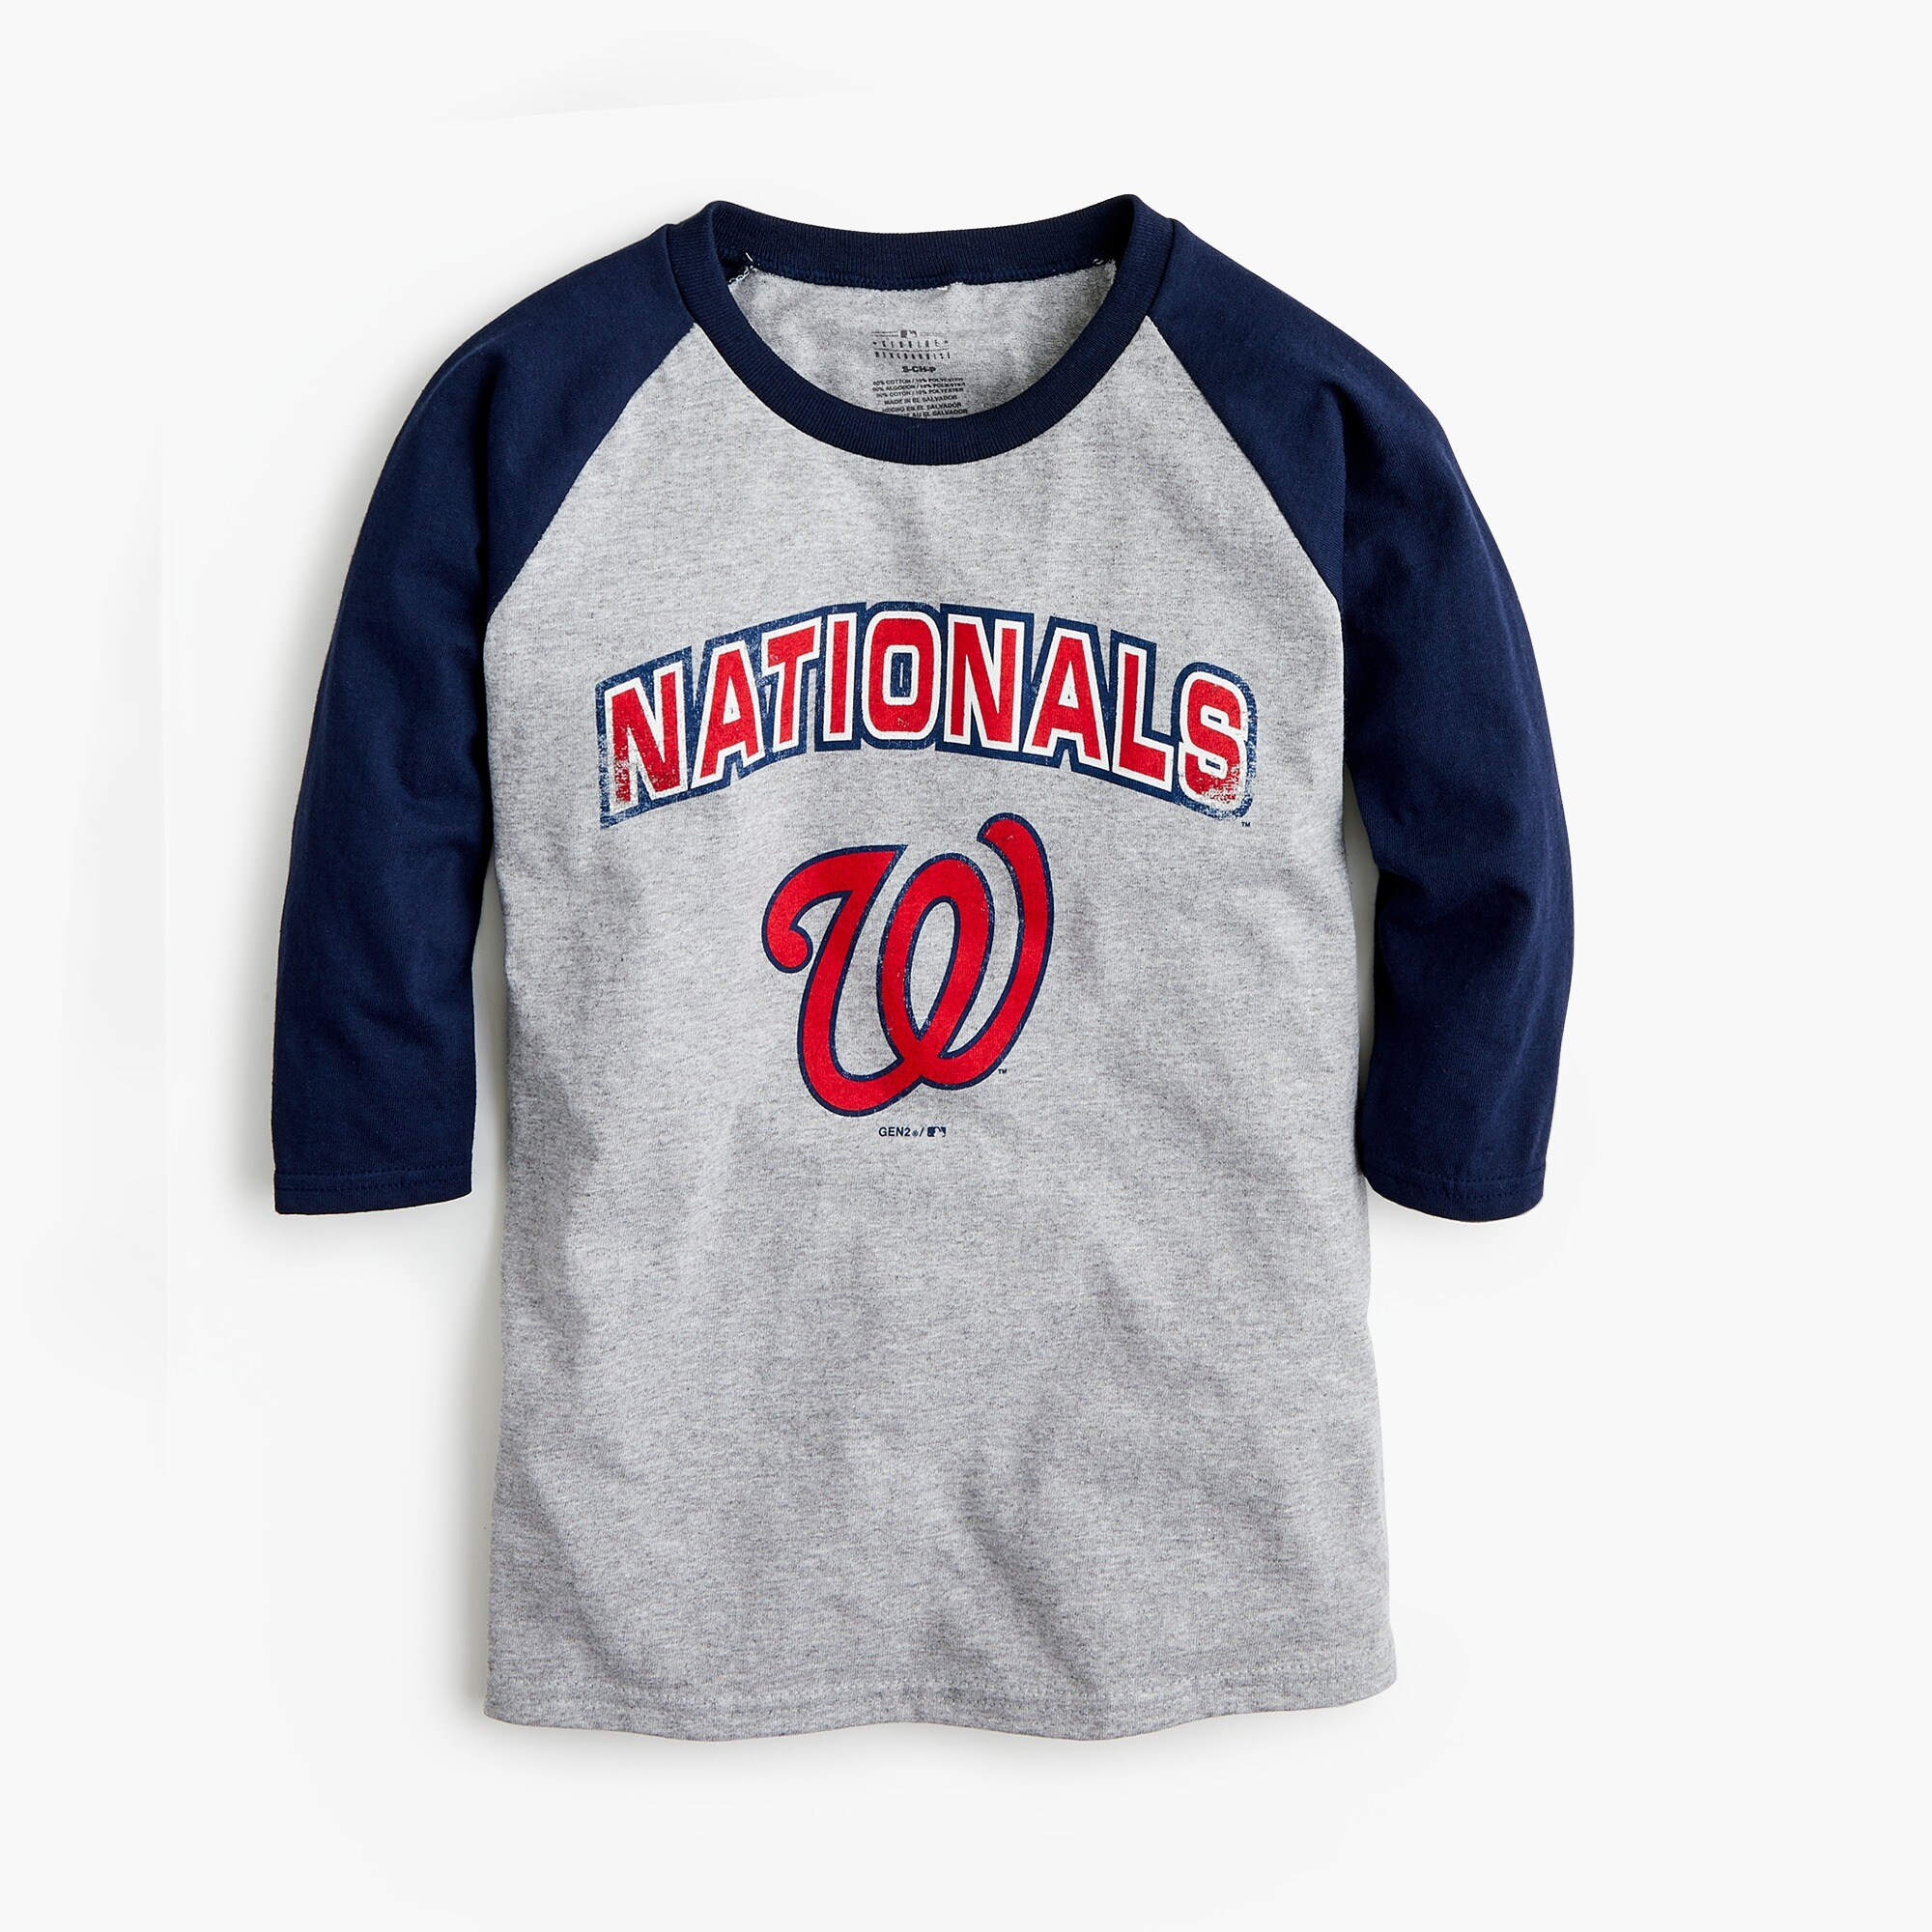 Kids' Washington Nationals baseball T-shirt boy graphics shop c